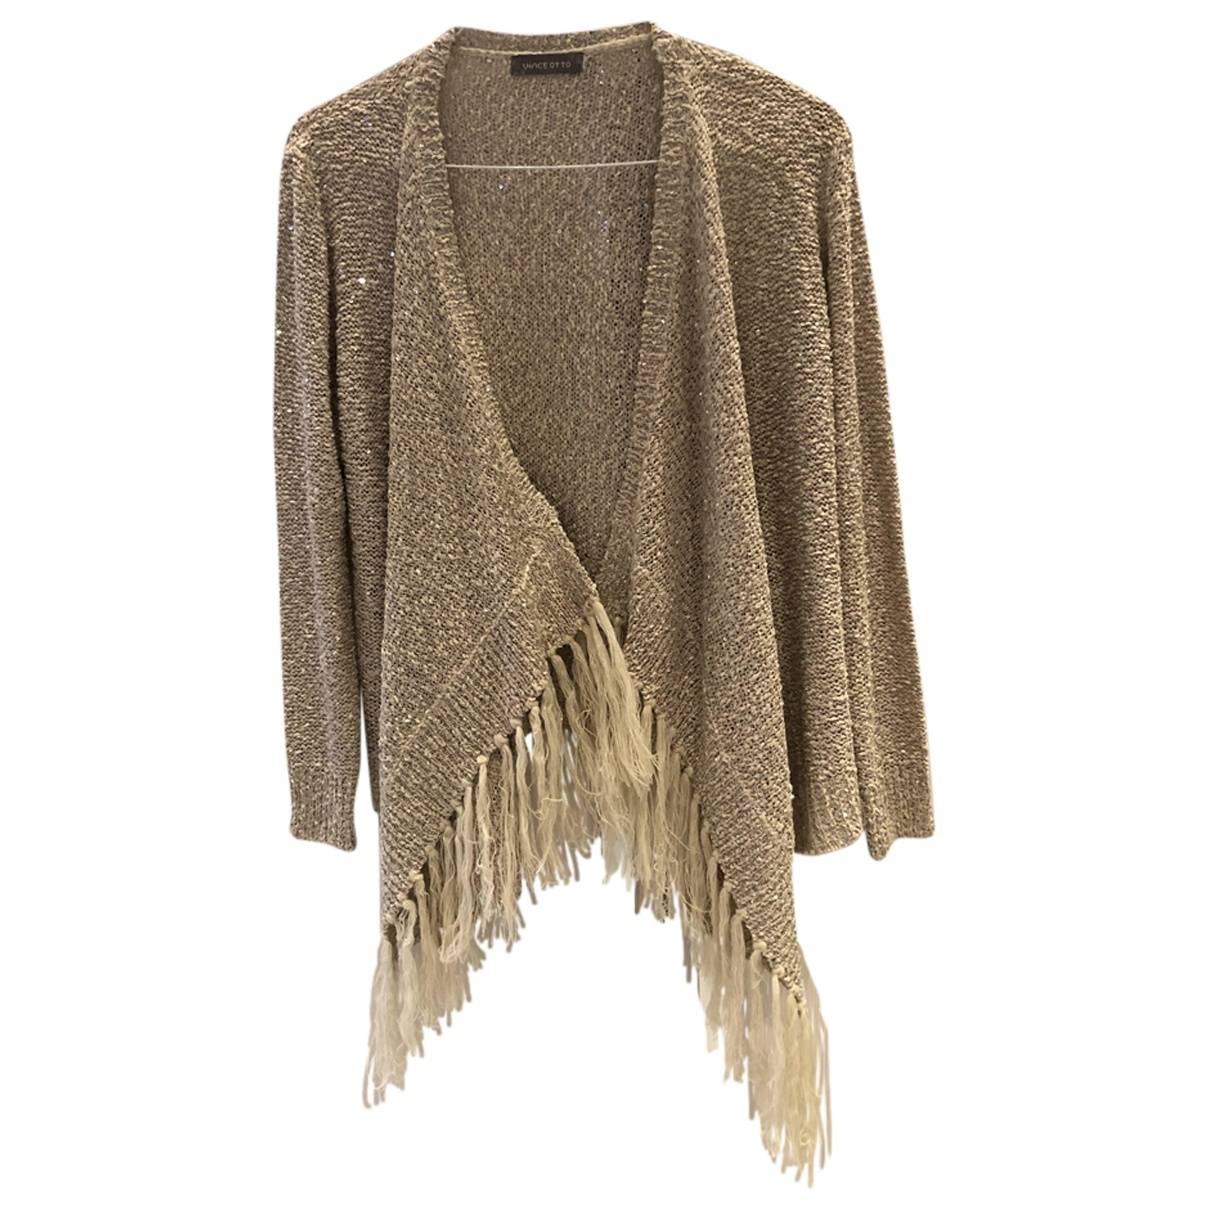 Non Signé / Unsigned \N Beige Knitwear for Women One Size International